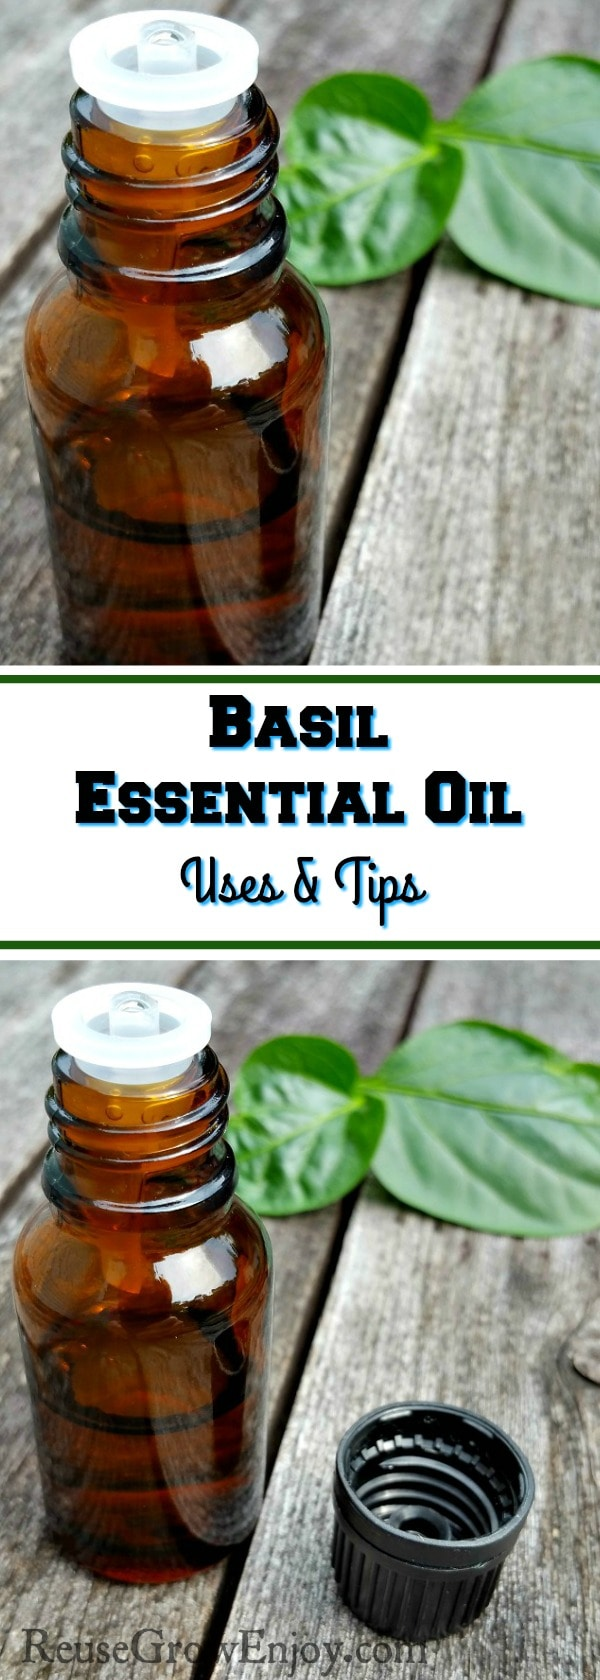 Wanting to learn a little about Basil Essential Oil? I will teach you what Basil Essential Oil is and what it is good for!